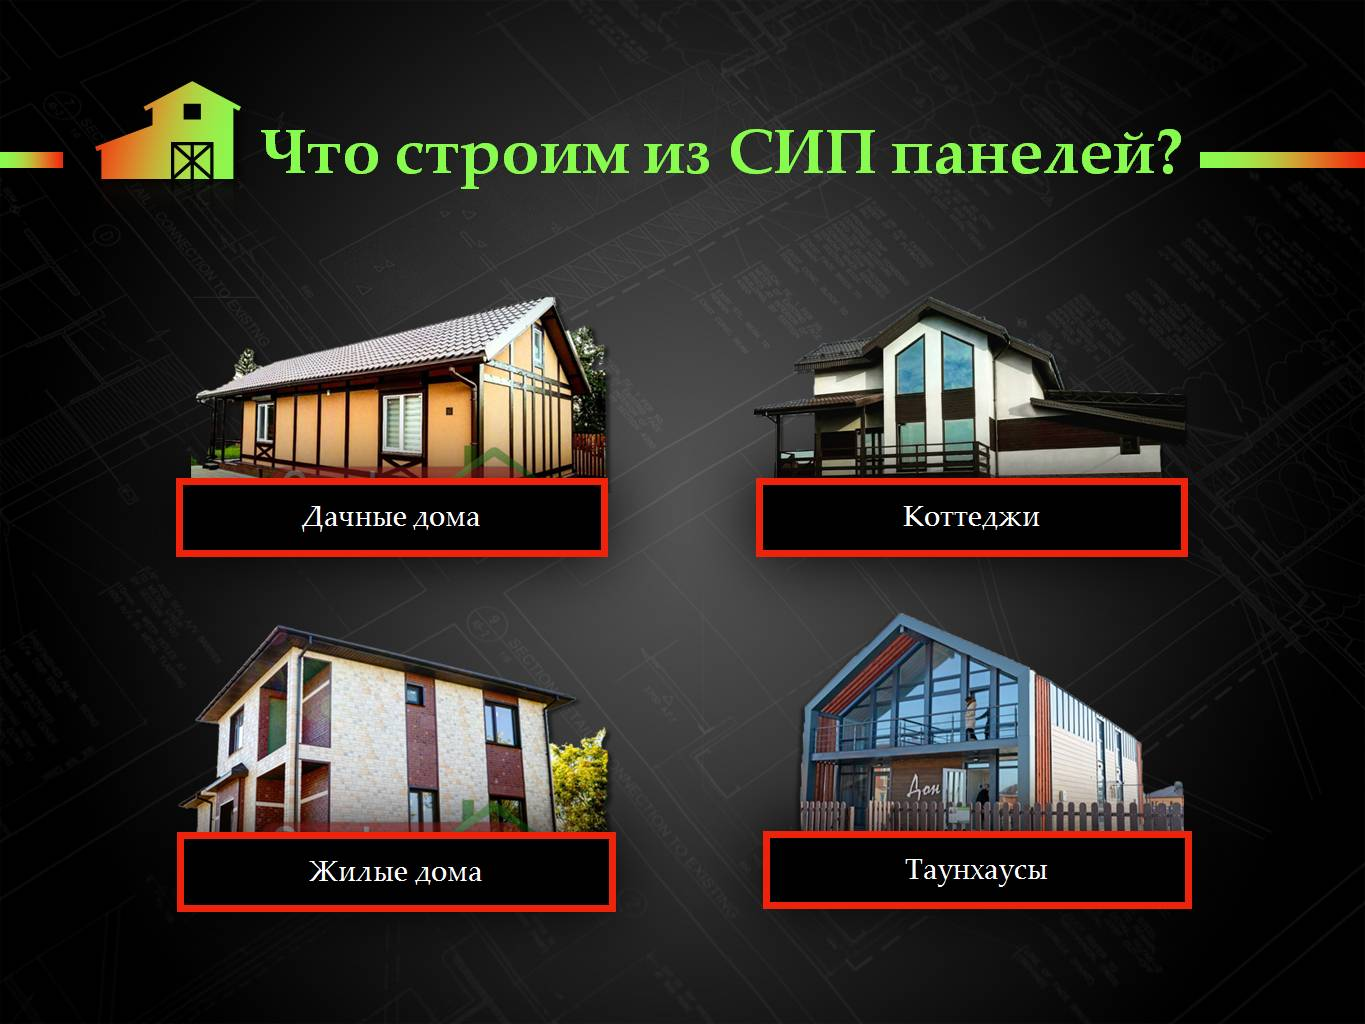 http://ozonhouse.ru/images/upload/Слайд4.JPG